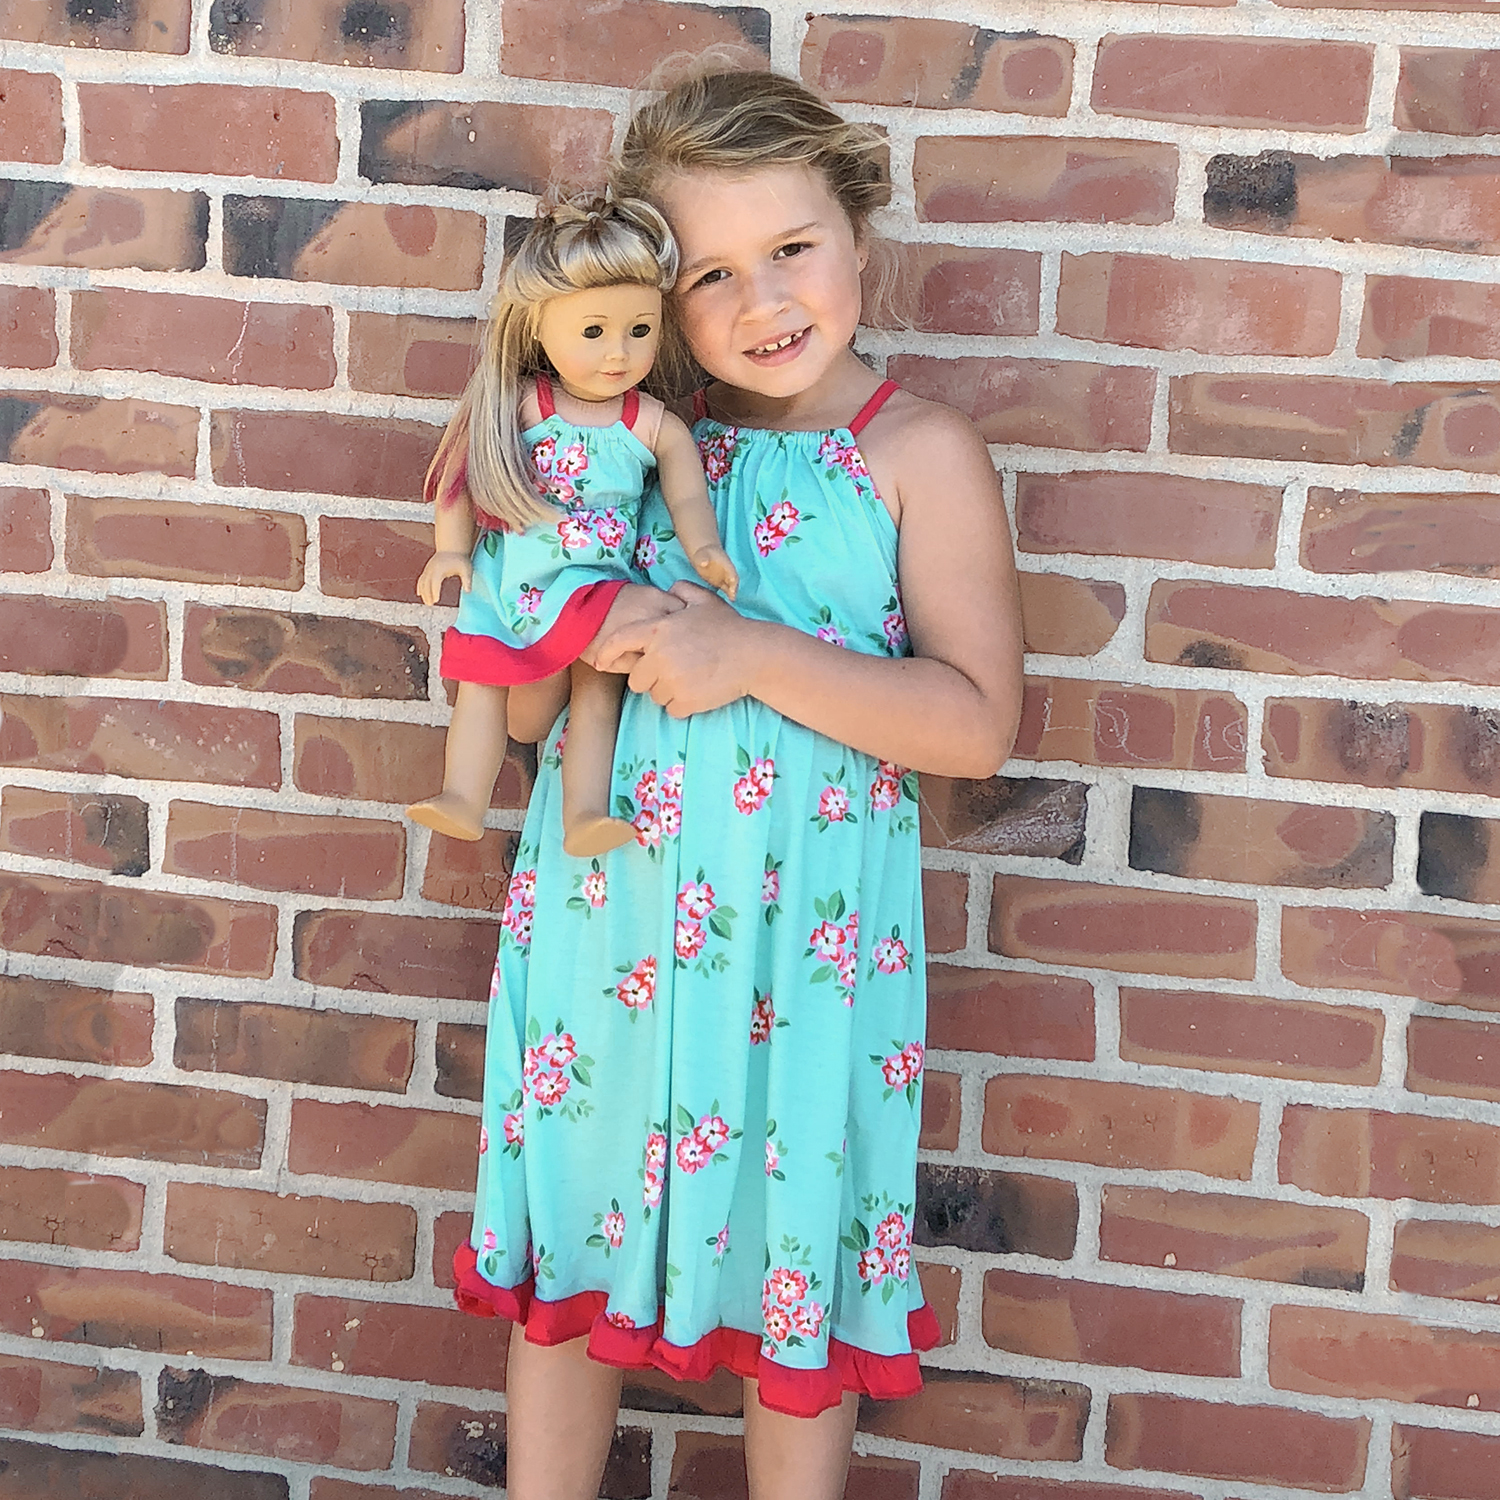 Mosaic Flower Print Twirl Tank Dresses fom Mommy and Me and Doll